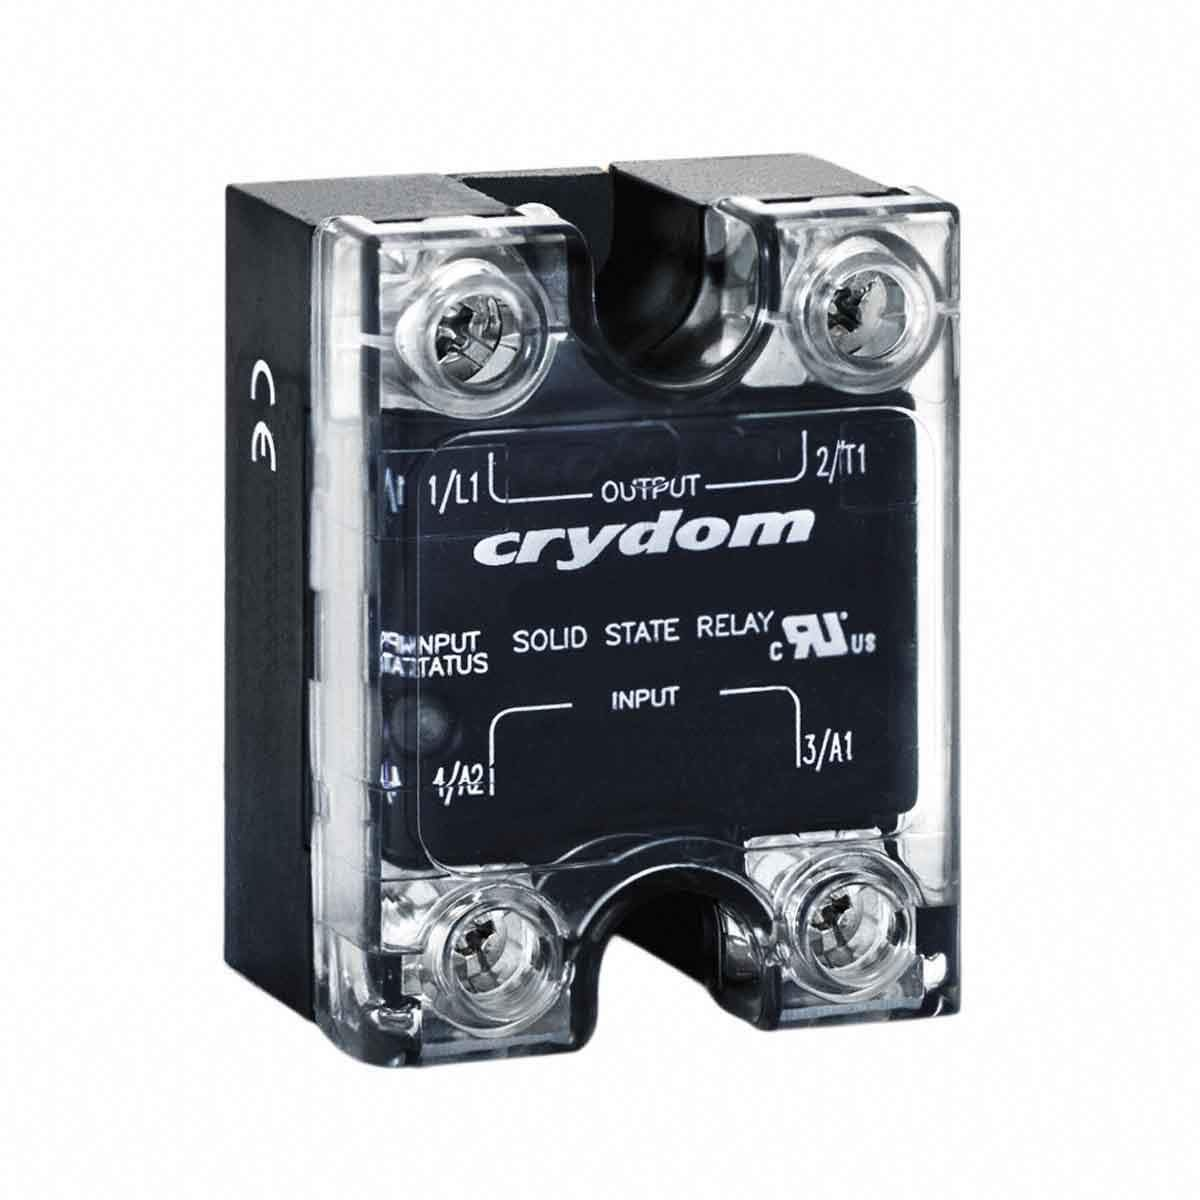 CWU4810, Solid State Relay 11mA/9mA 48V/280V AC/DC-in 25A 280V AC-Out 4-Pin